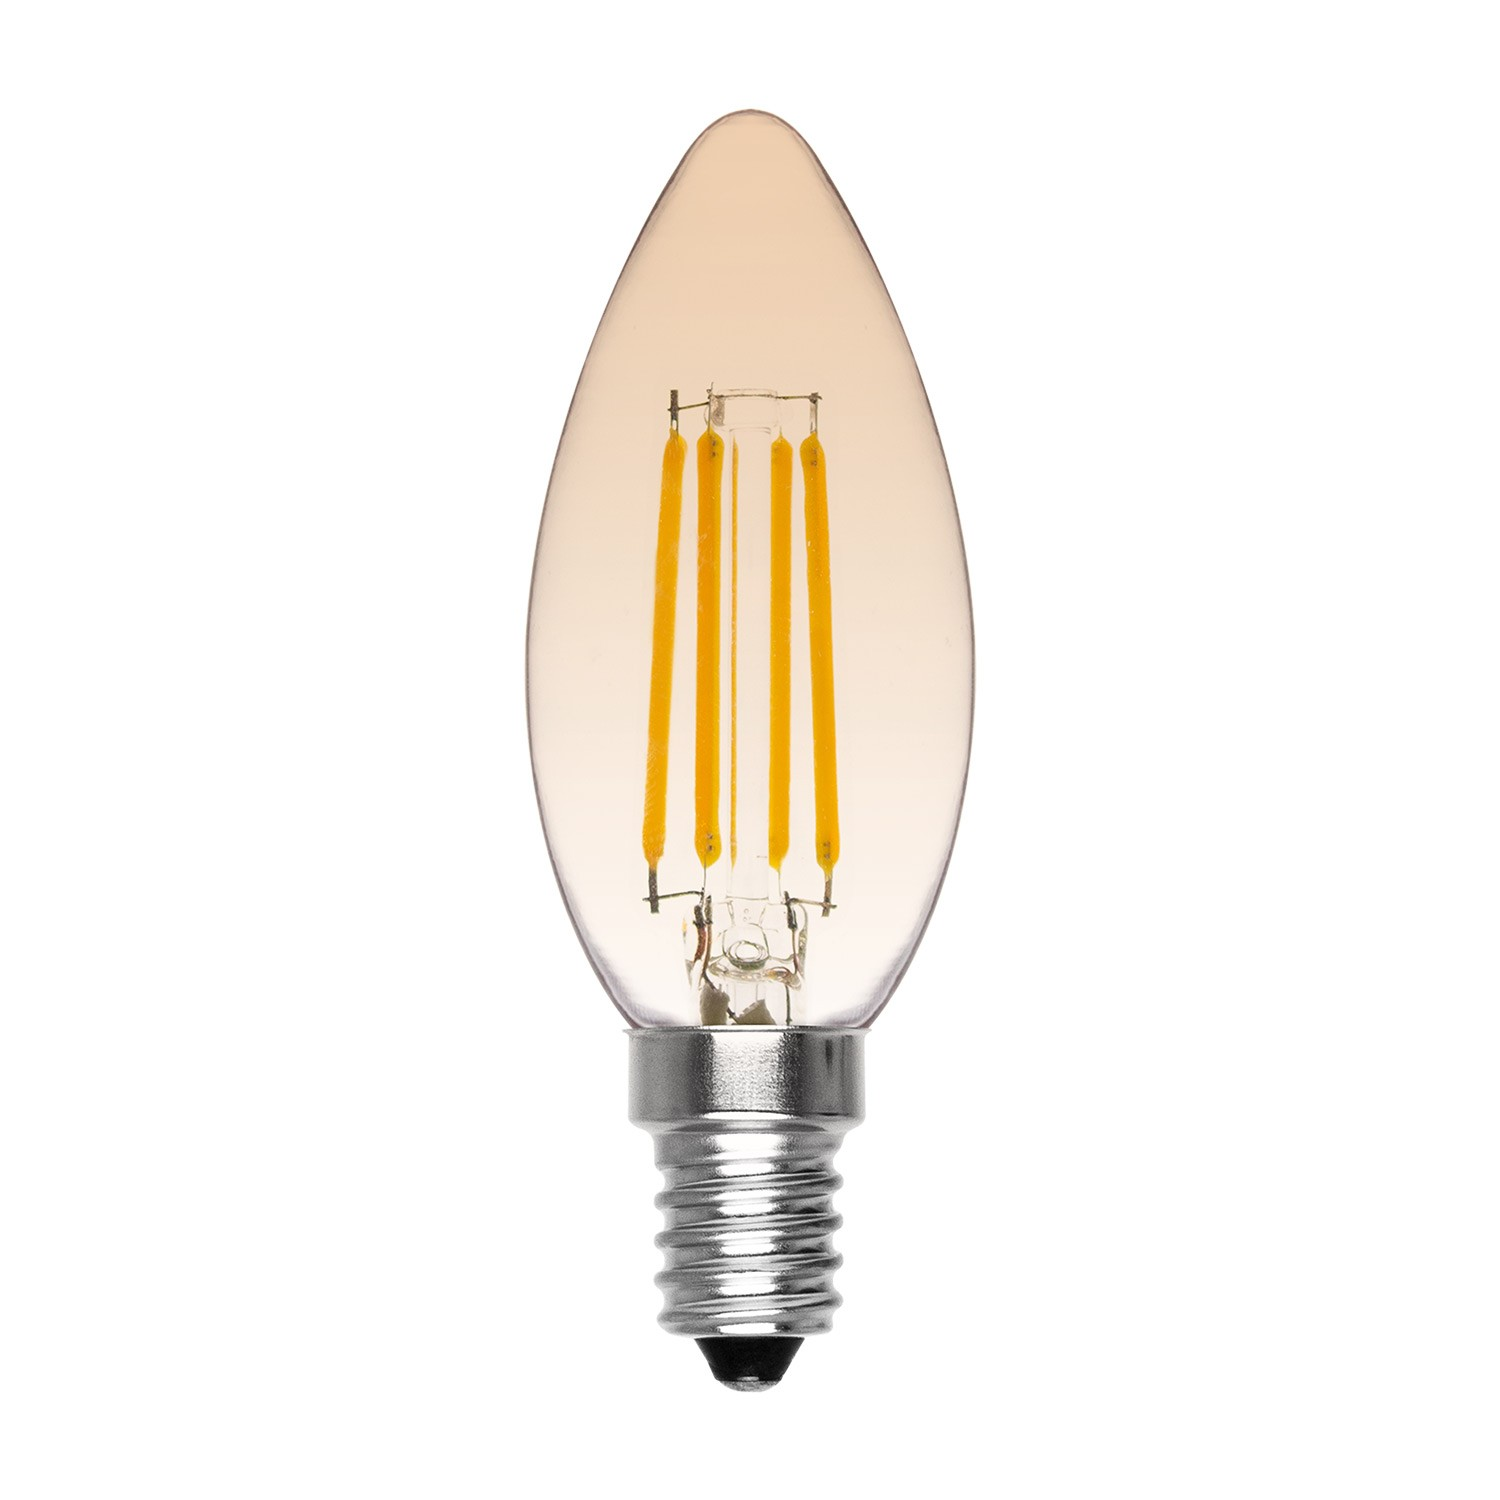 Gradient Chand Bulb, gallery image 1